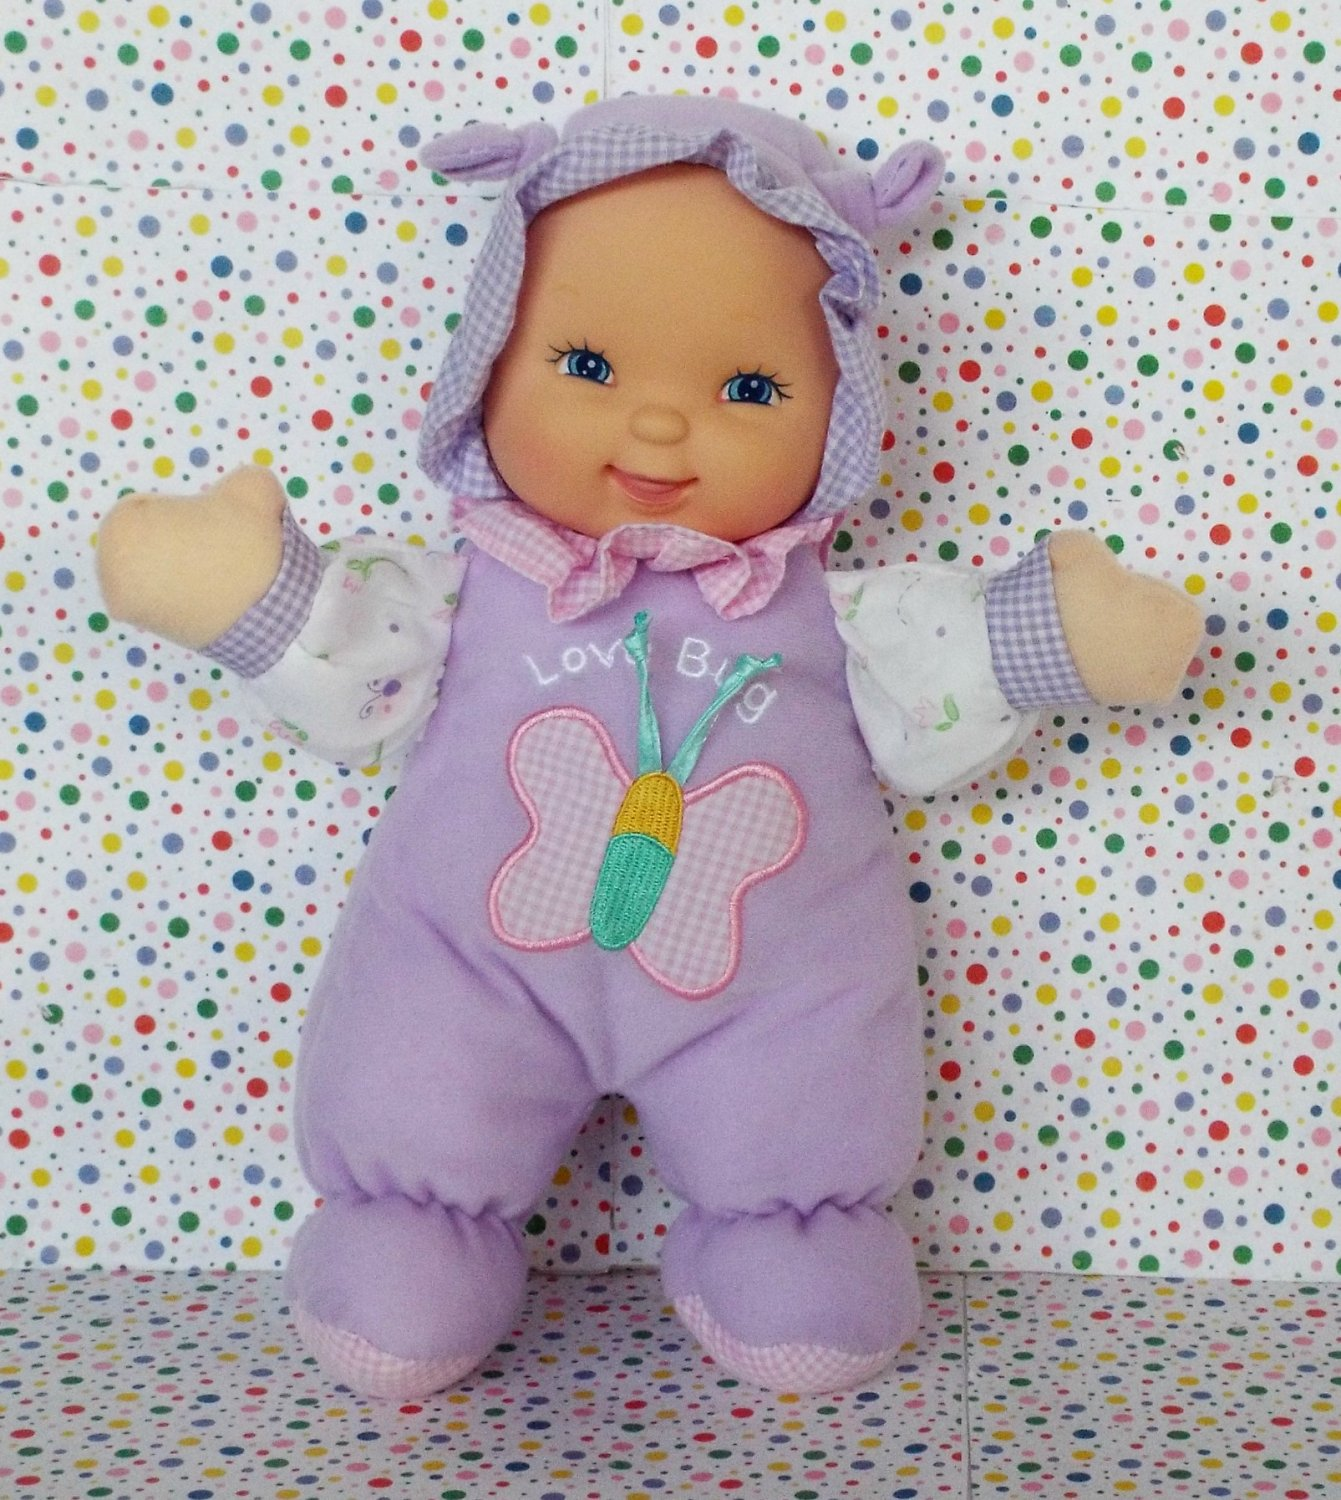 7 16 Sold Goldberger My First Baby Doll Quot Love Bug Quot Purple